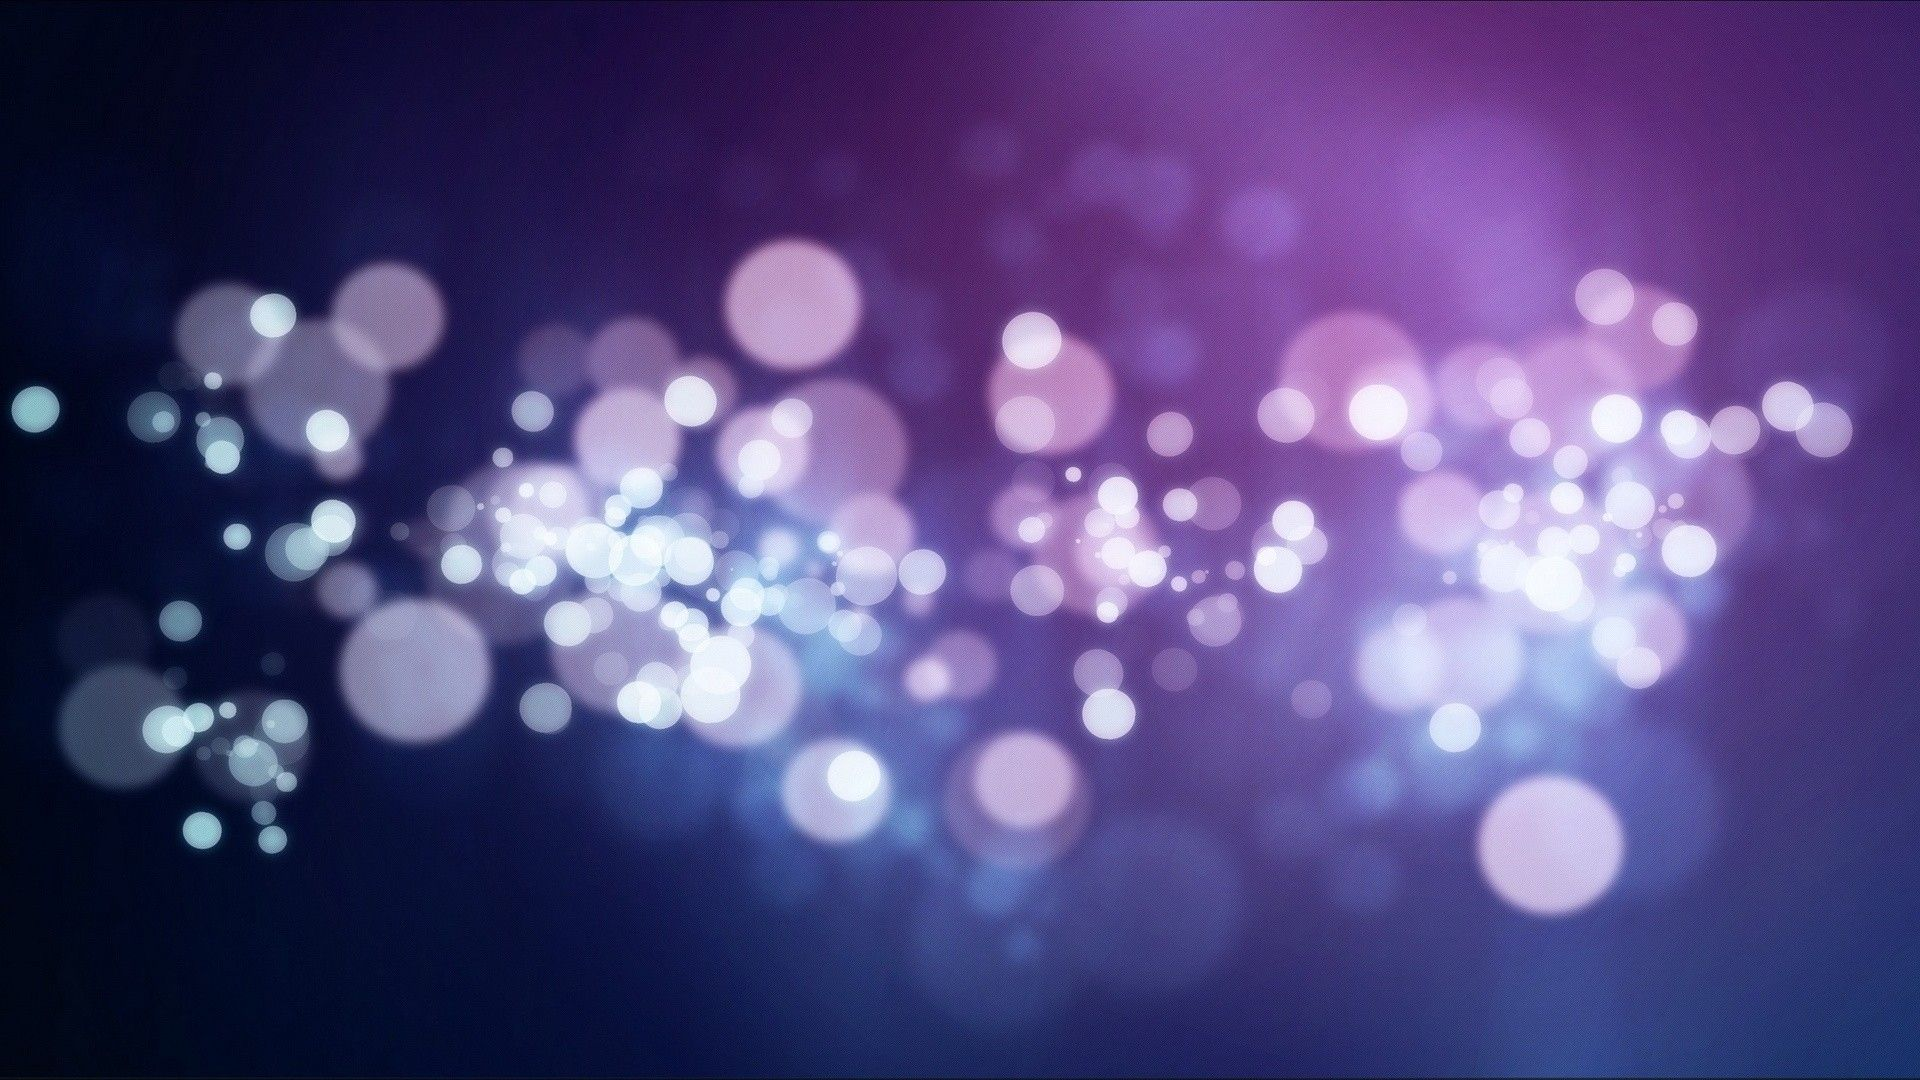 Purple Abstract Wallpaper Abstract Wallpaper Blurry Lights Purple Abstract